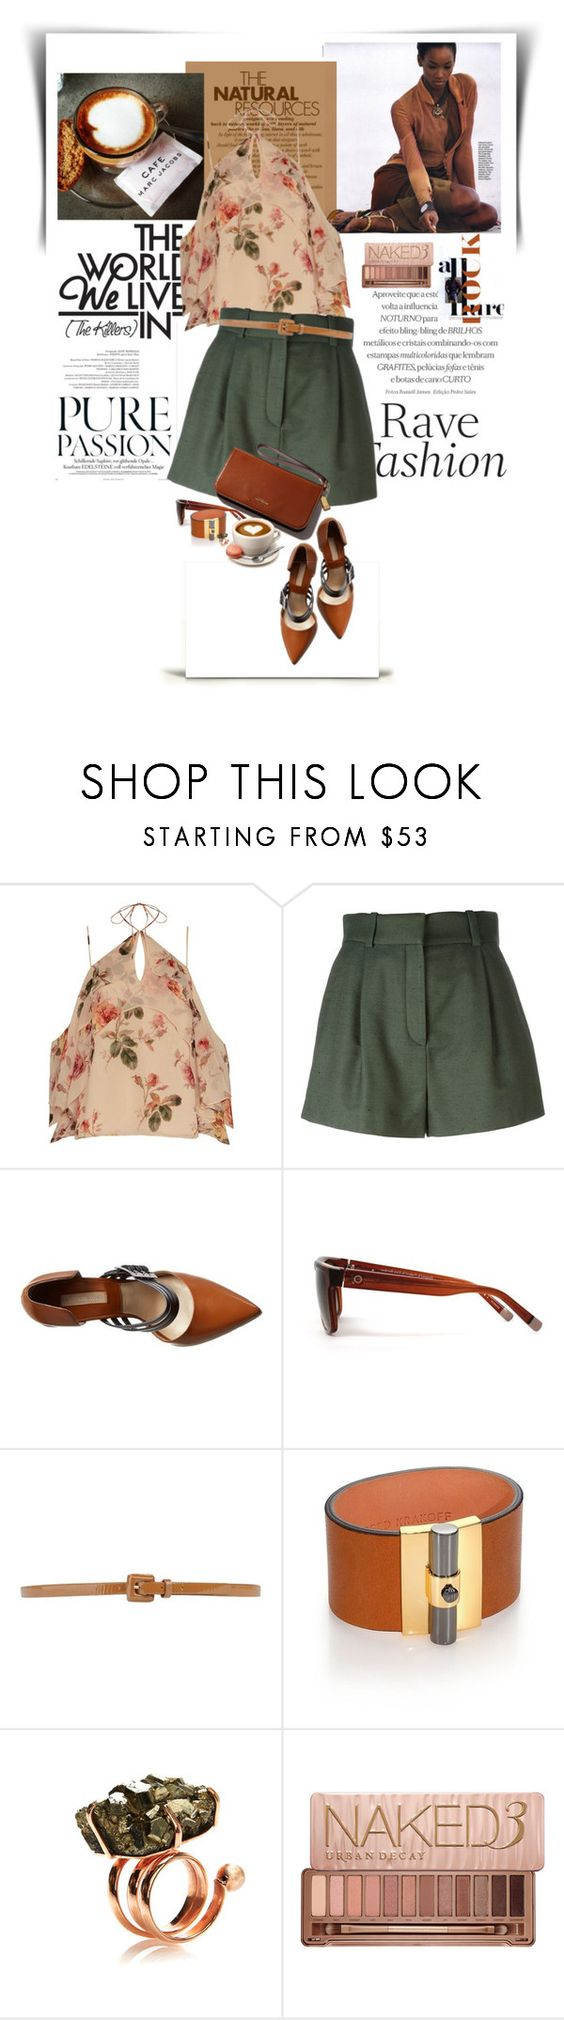 """...The Natural..."" by vanjazaric6886 ❤ liked on Polyvore featuring Exclusive for Intermix, Versace, Michael Kors, Etnia Barcelona, Tara Jarmon, Reed Krakoff, Cédric Charlier and Urban Decay"